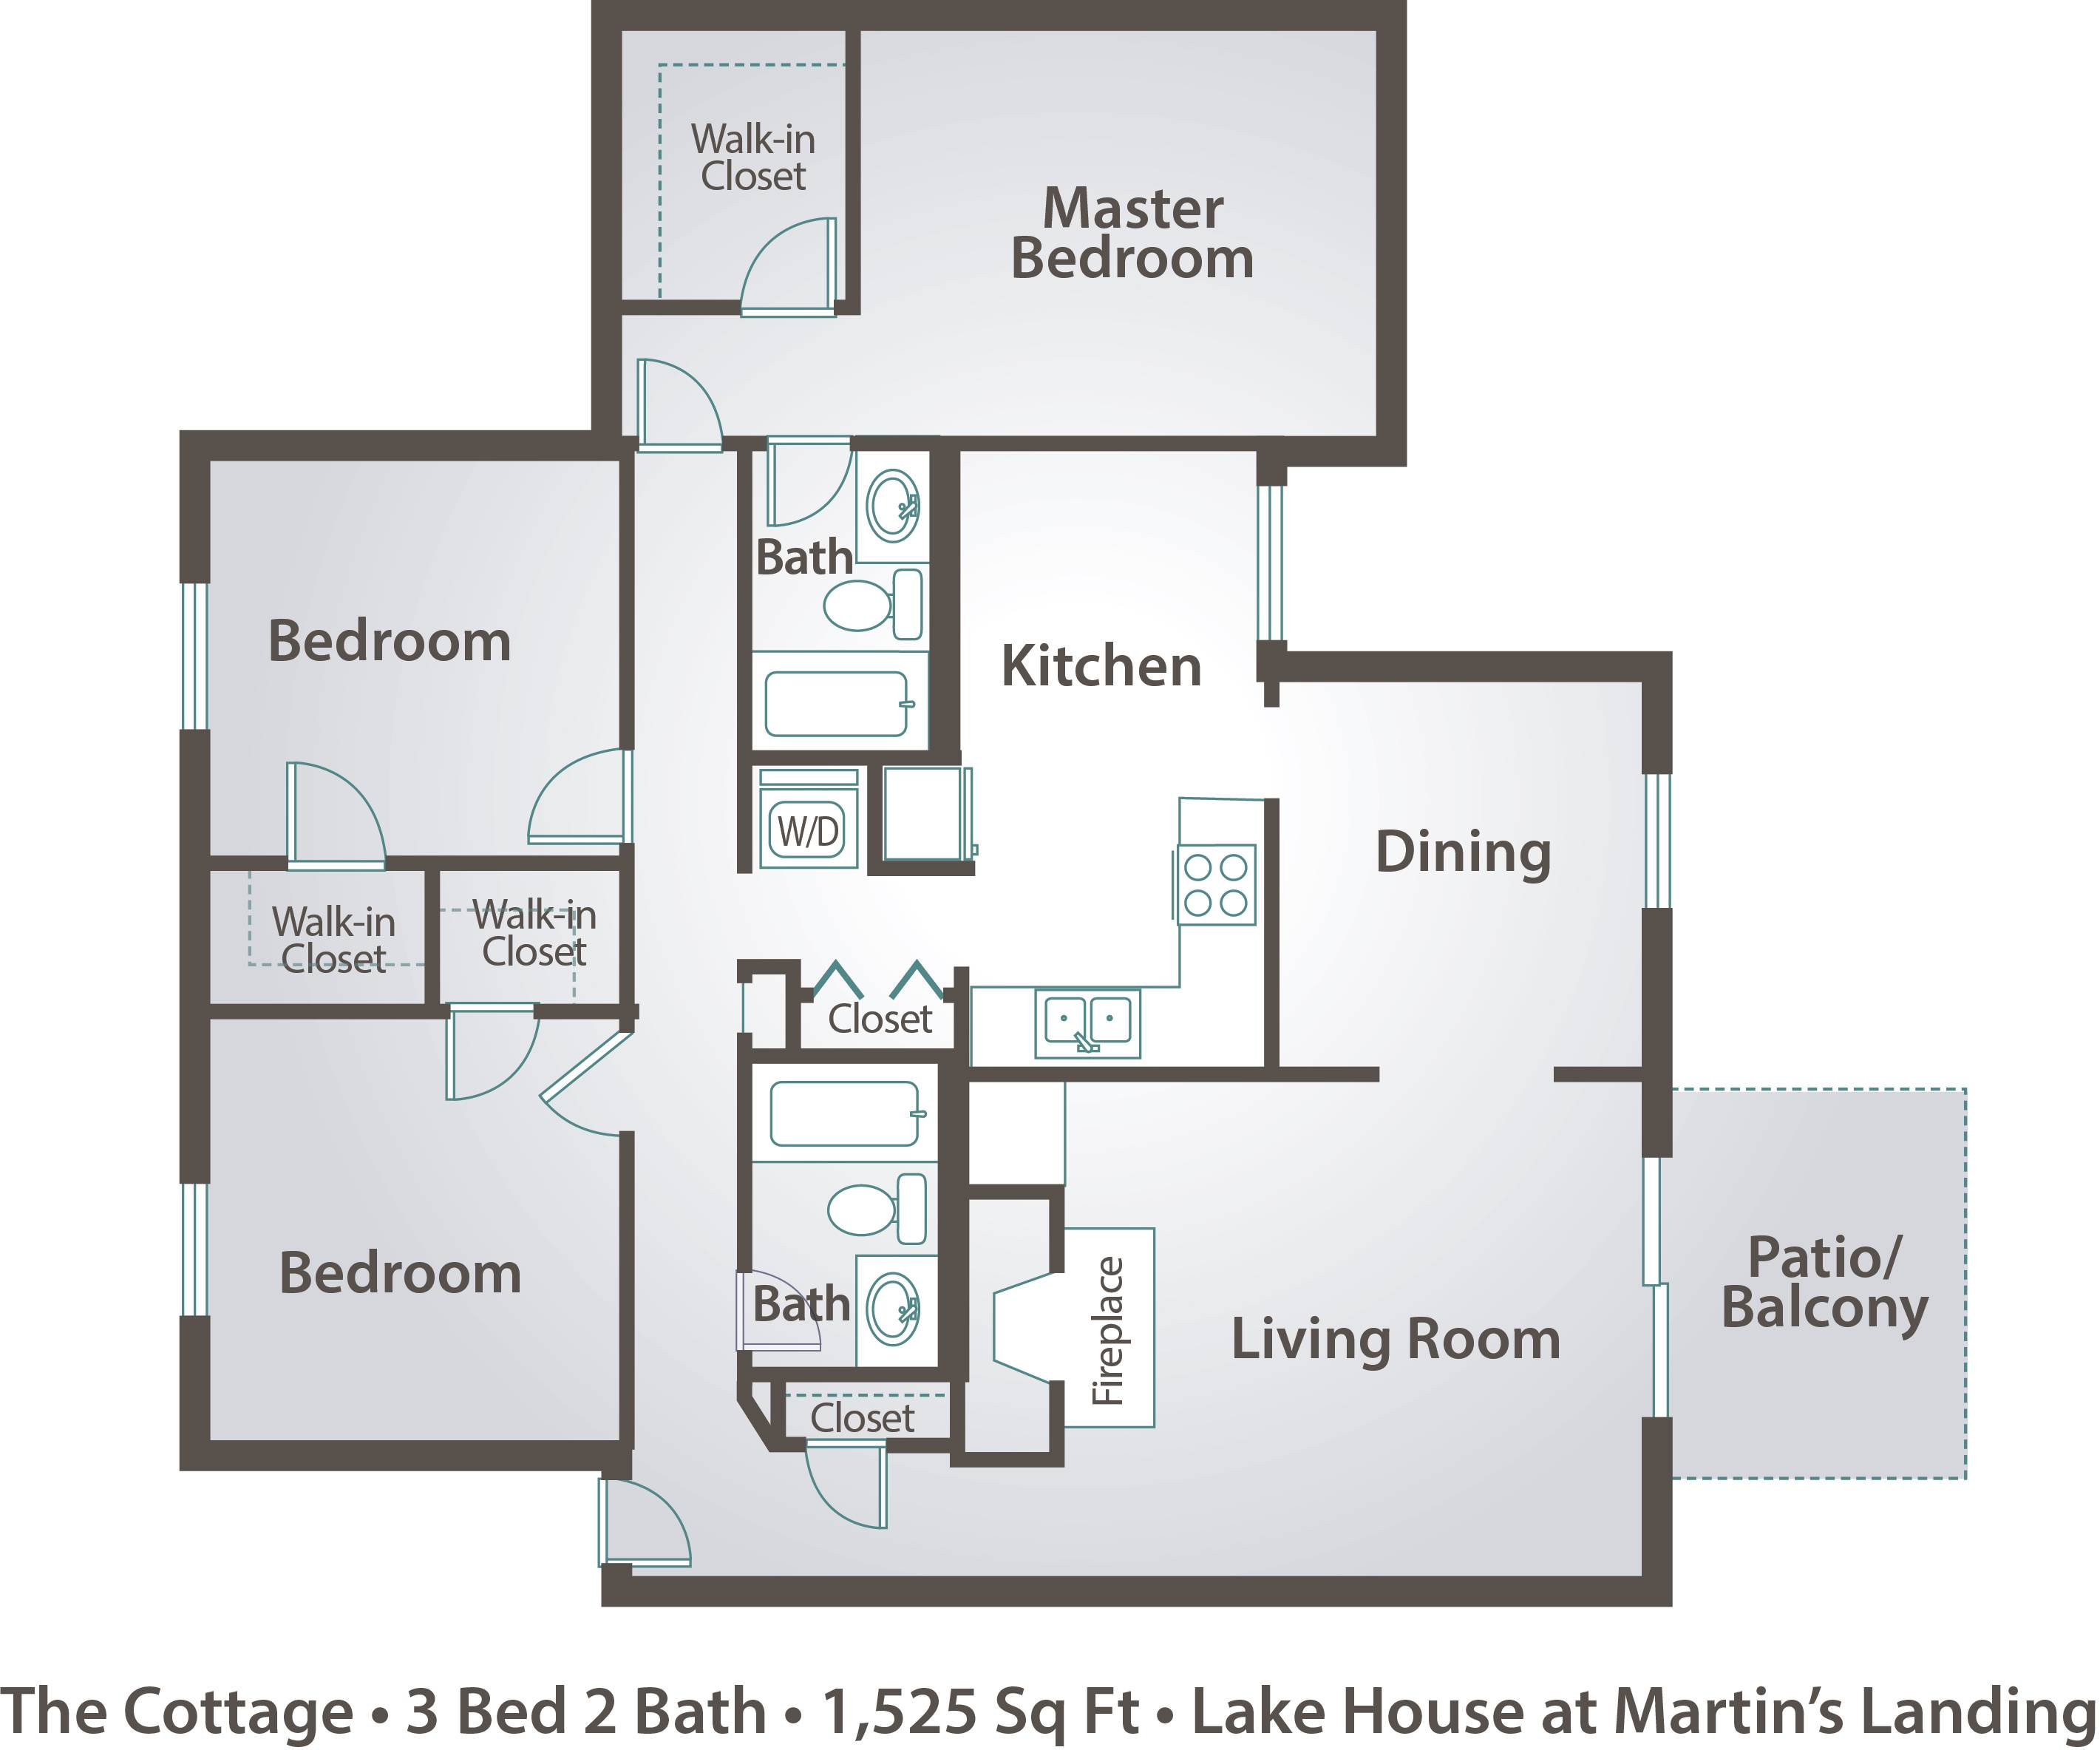 Apartment floor plans pricing the lake house at martin for 3 bedroom 2 bath garage apartment plans